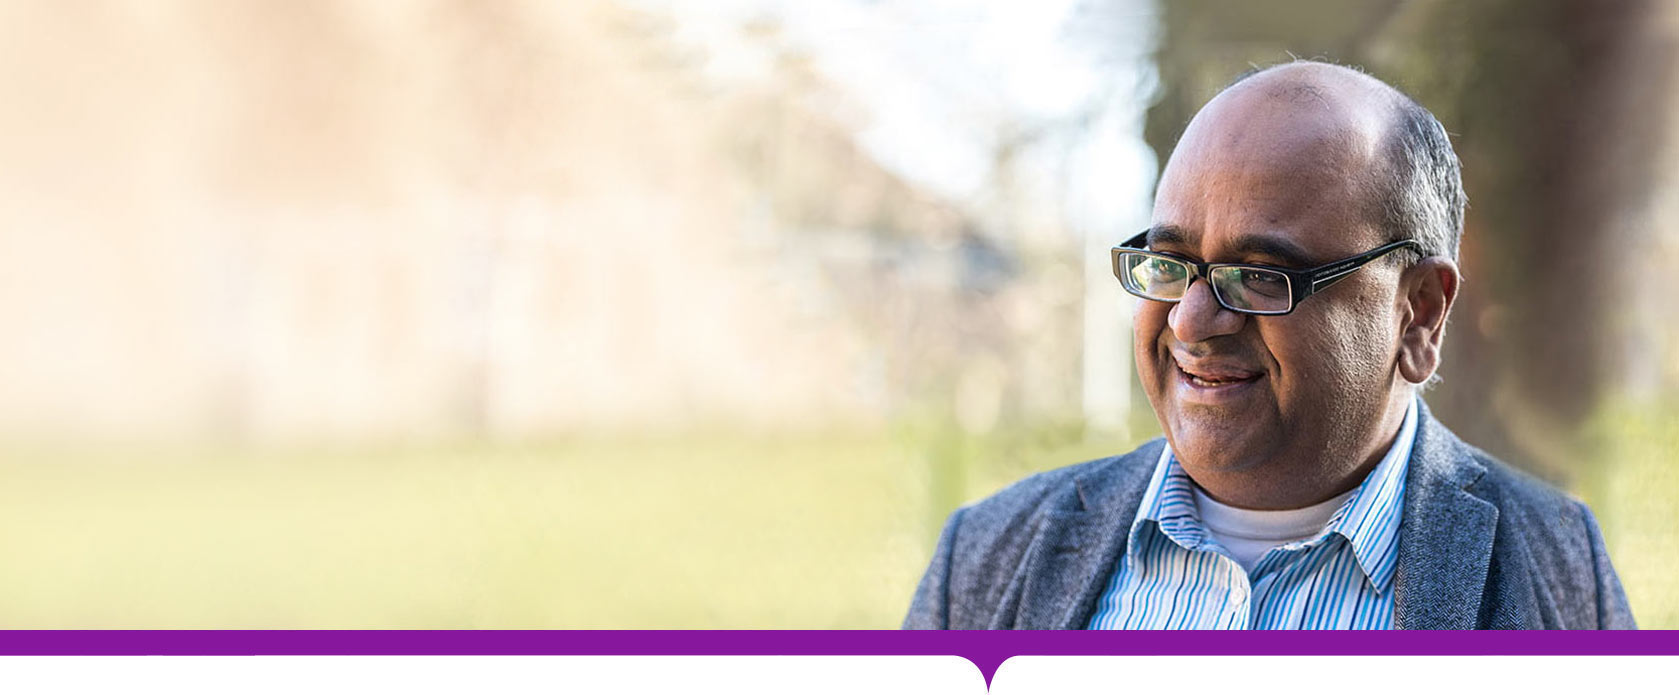 Dr Adil Jawad. Clinical Lead for Acute Services in NW Sussex, Consultant Psychiatrist for crisis resolution and home treatment in NW Sussex